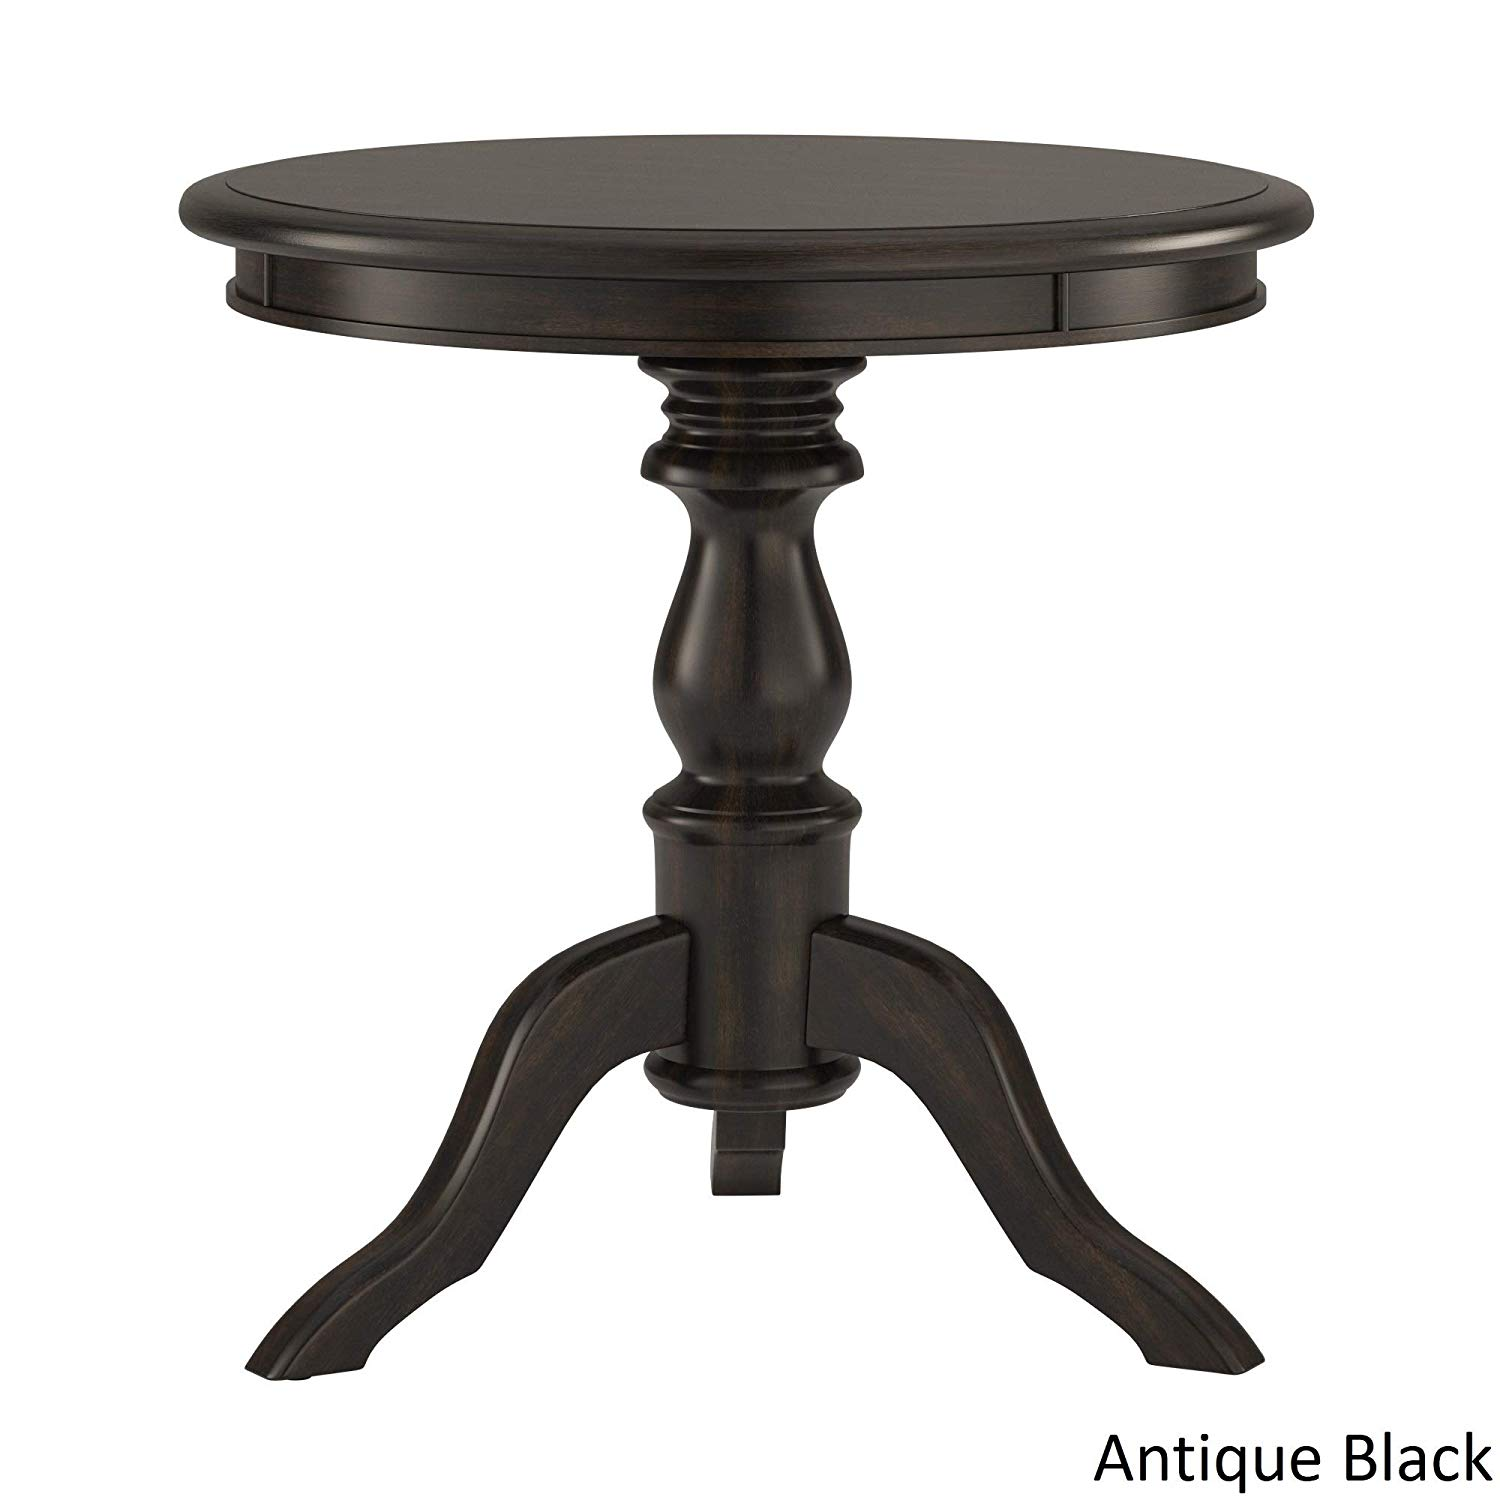 beckett antique wood pedestal accent table inspire classic black kitchen dining wooden room chairs contemporary metal side tables end with light attached cabbage rose tiffany lamp